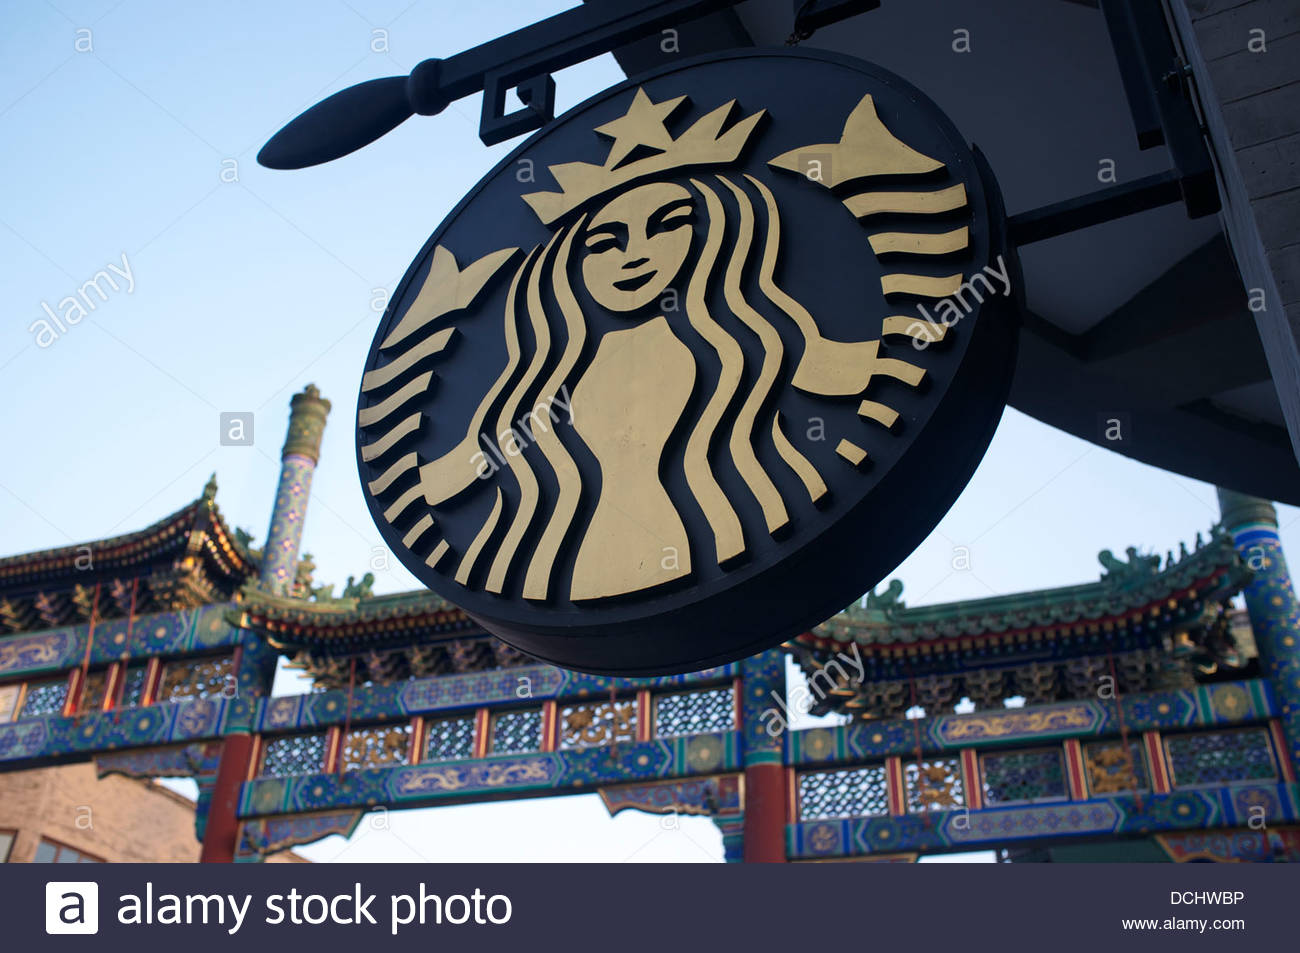 Starbucks logo stock photos starbucks logo stock images alamy starbucks logo is in front of a chinese traditional decorated archway at qianmen street in beijing biocorpaavc Image collections